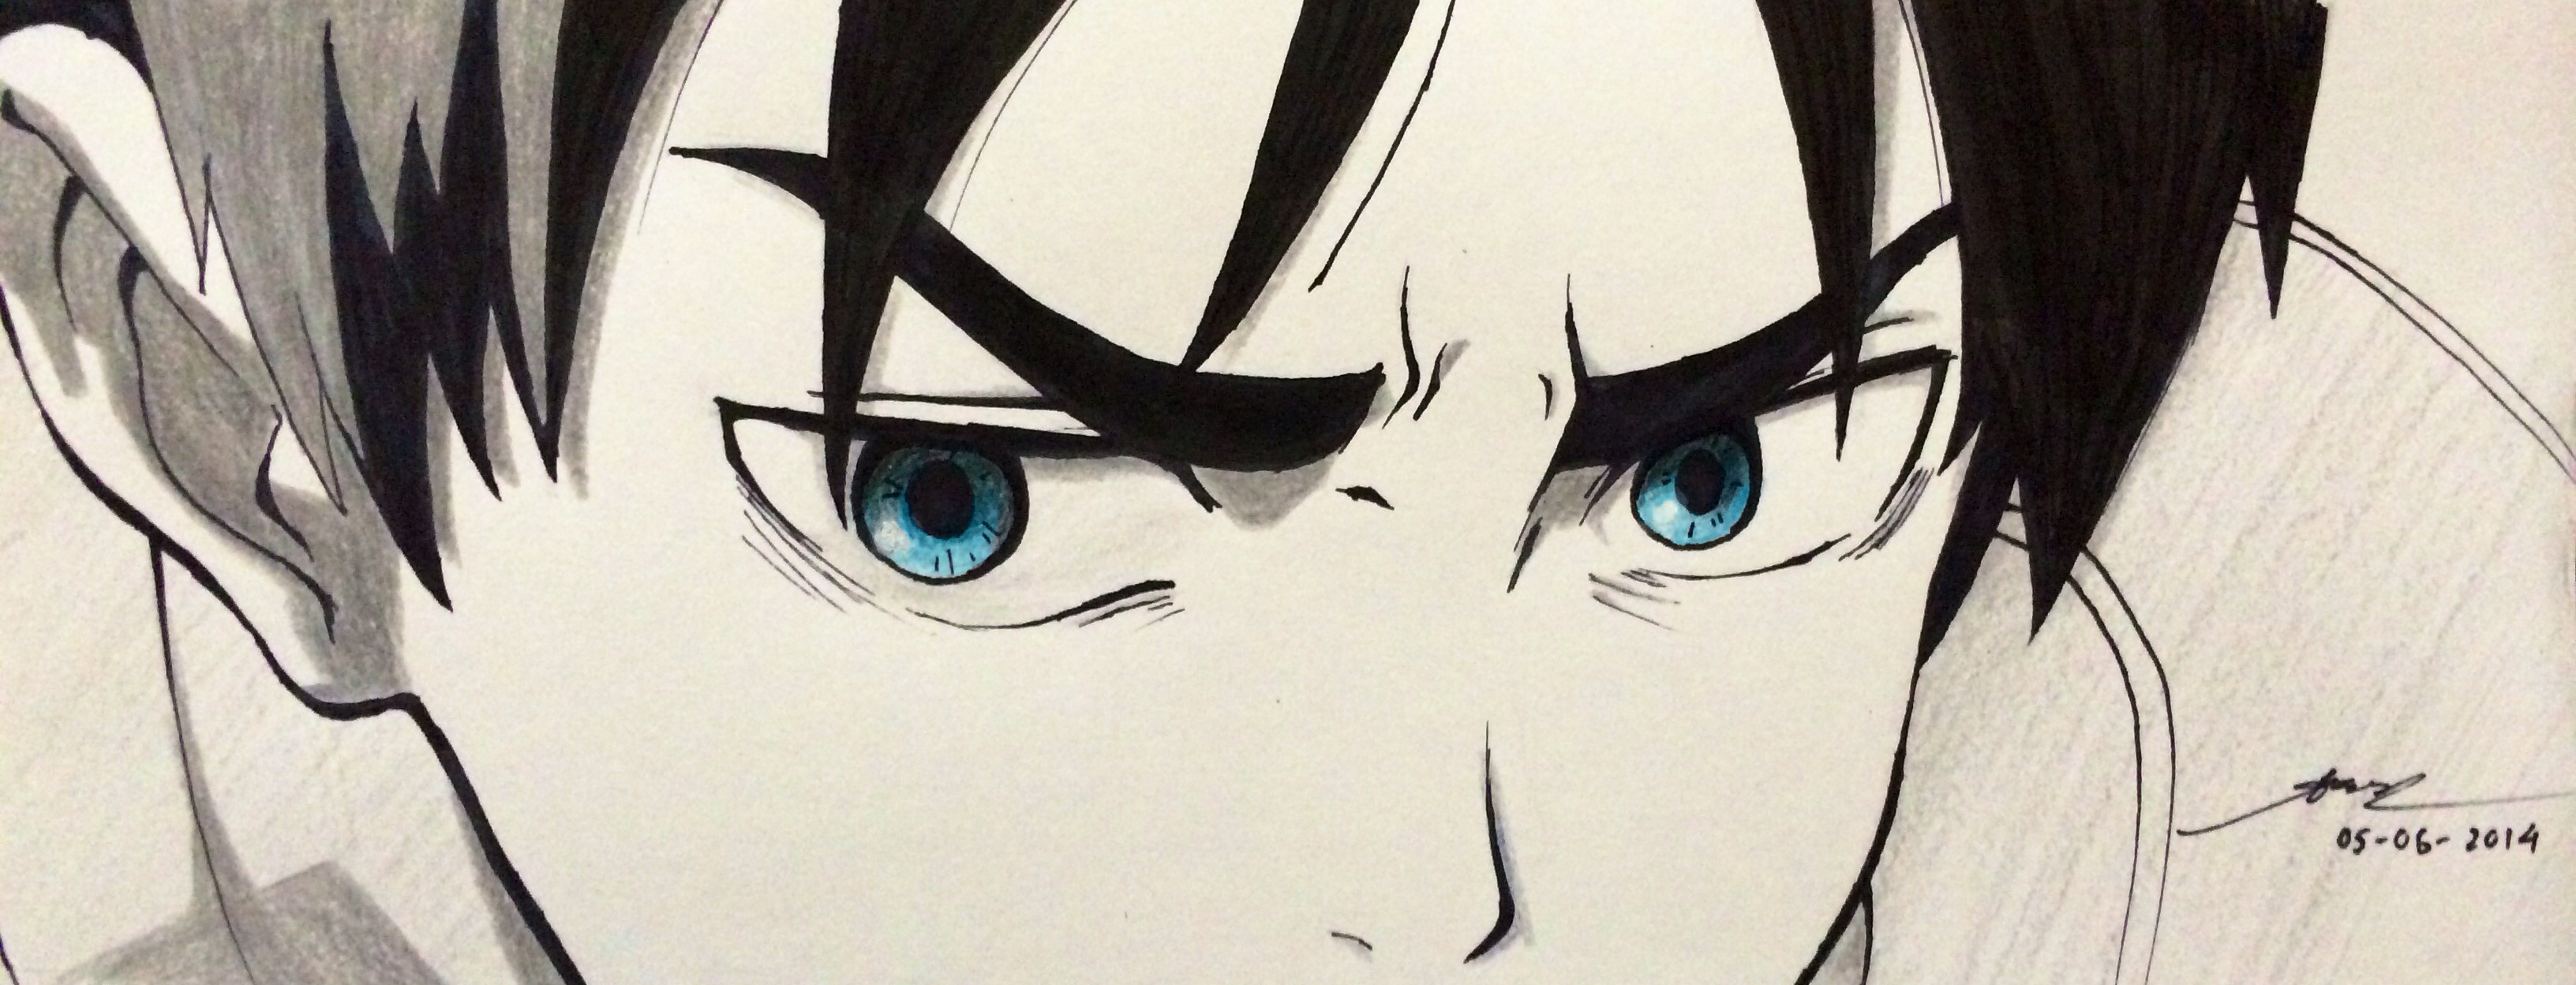 Attack on Titan - Eren Jaeger Eyes by AoiCancerius on ...